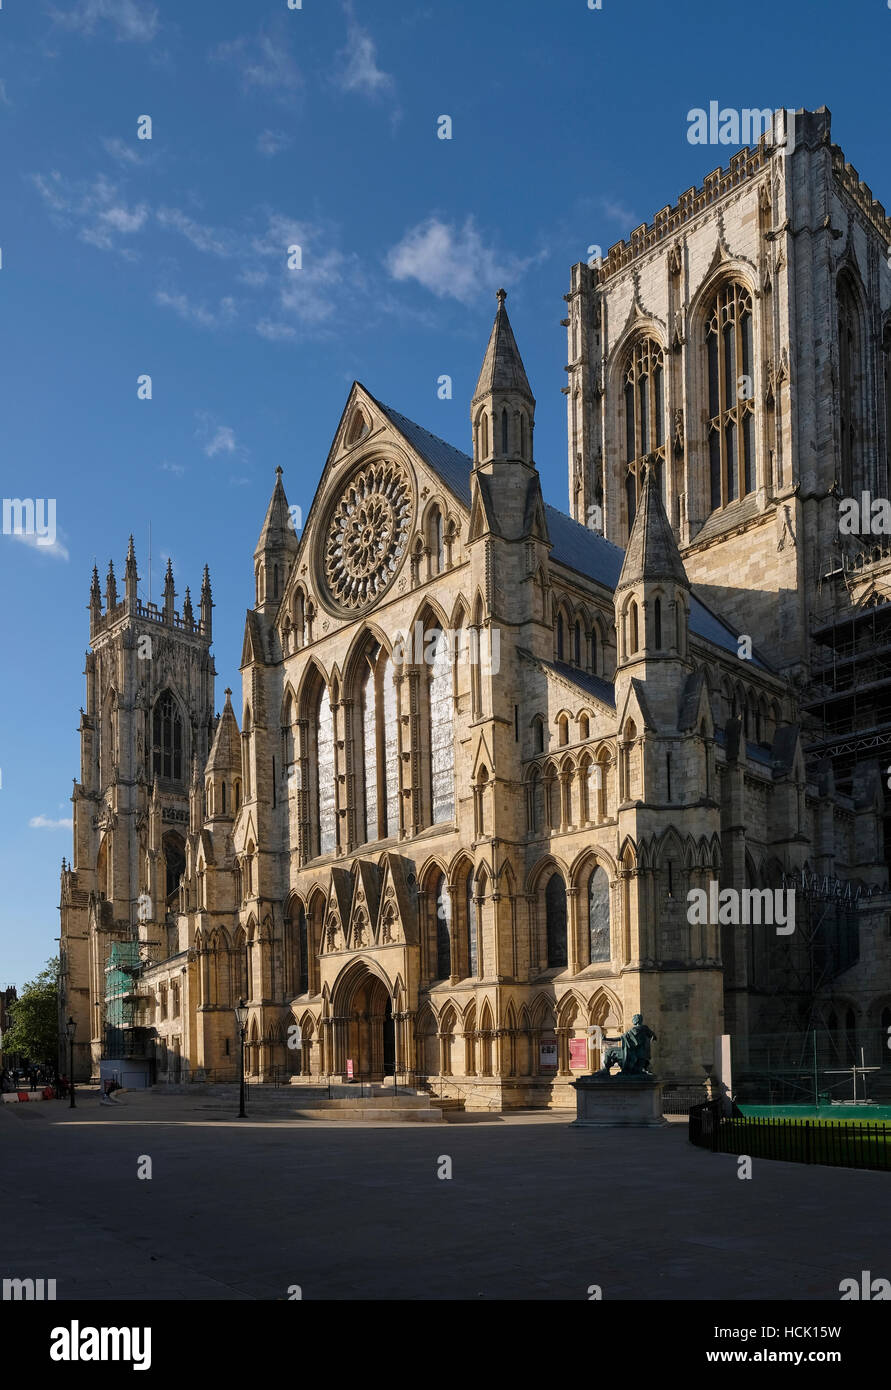 York Minster the exterior of the south transept, c. 1240, showing elaborate arrangement of windows and arcading. - Stock Image